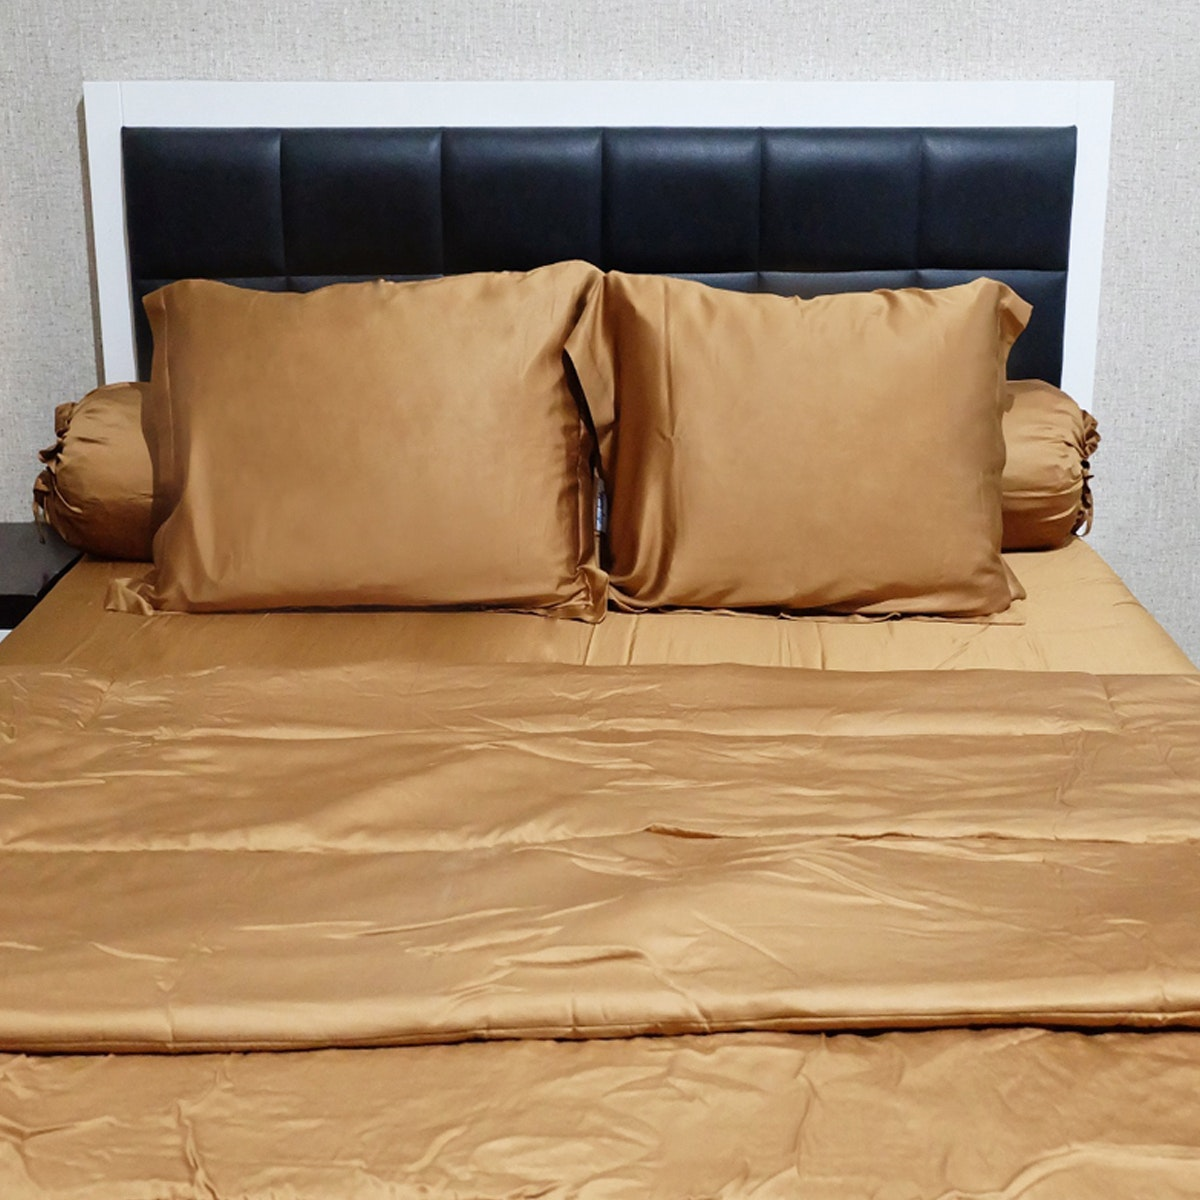 Sleep Buddy Set Sprei dan Bed Cover Plain Brown Sutra Tencel 160x200x40cm